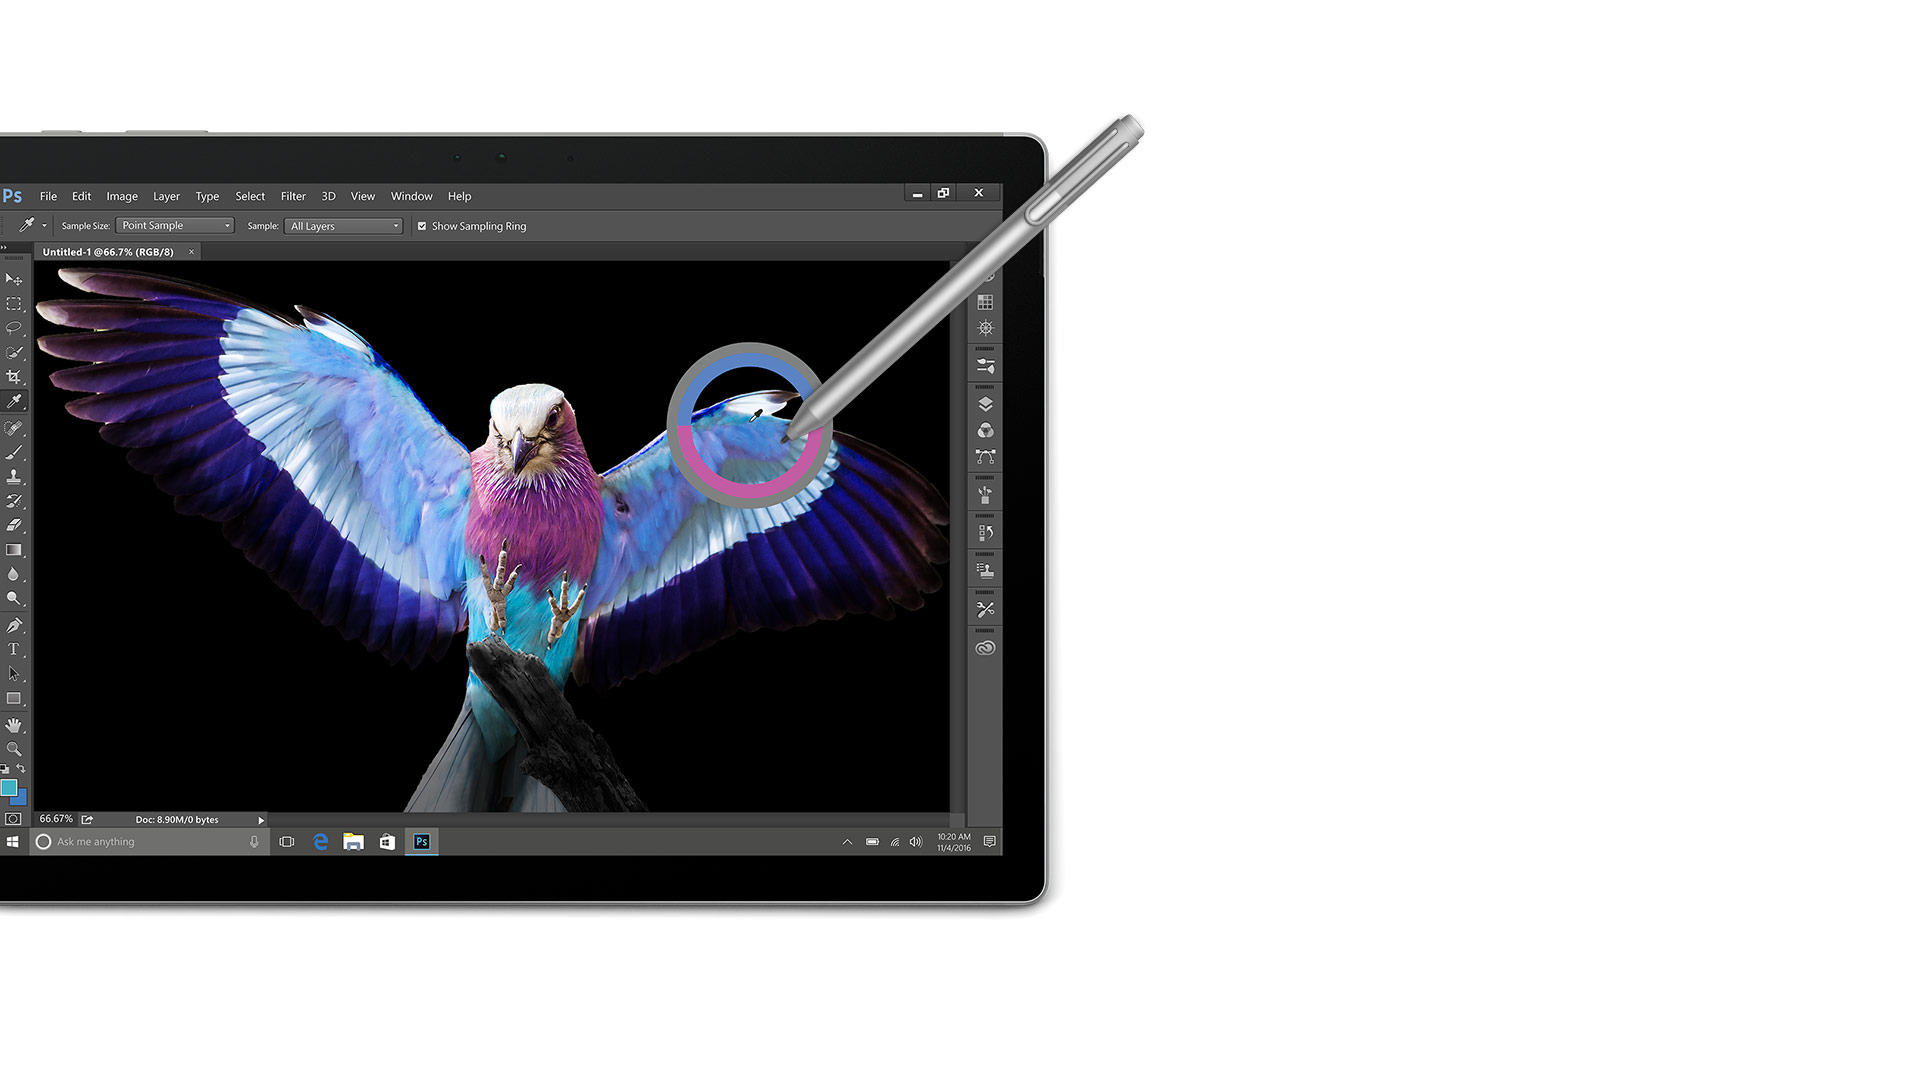 Surface Book display with Pen touching the screen and a color picker appearing on the screen